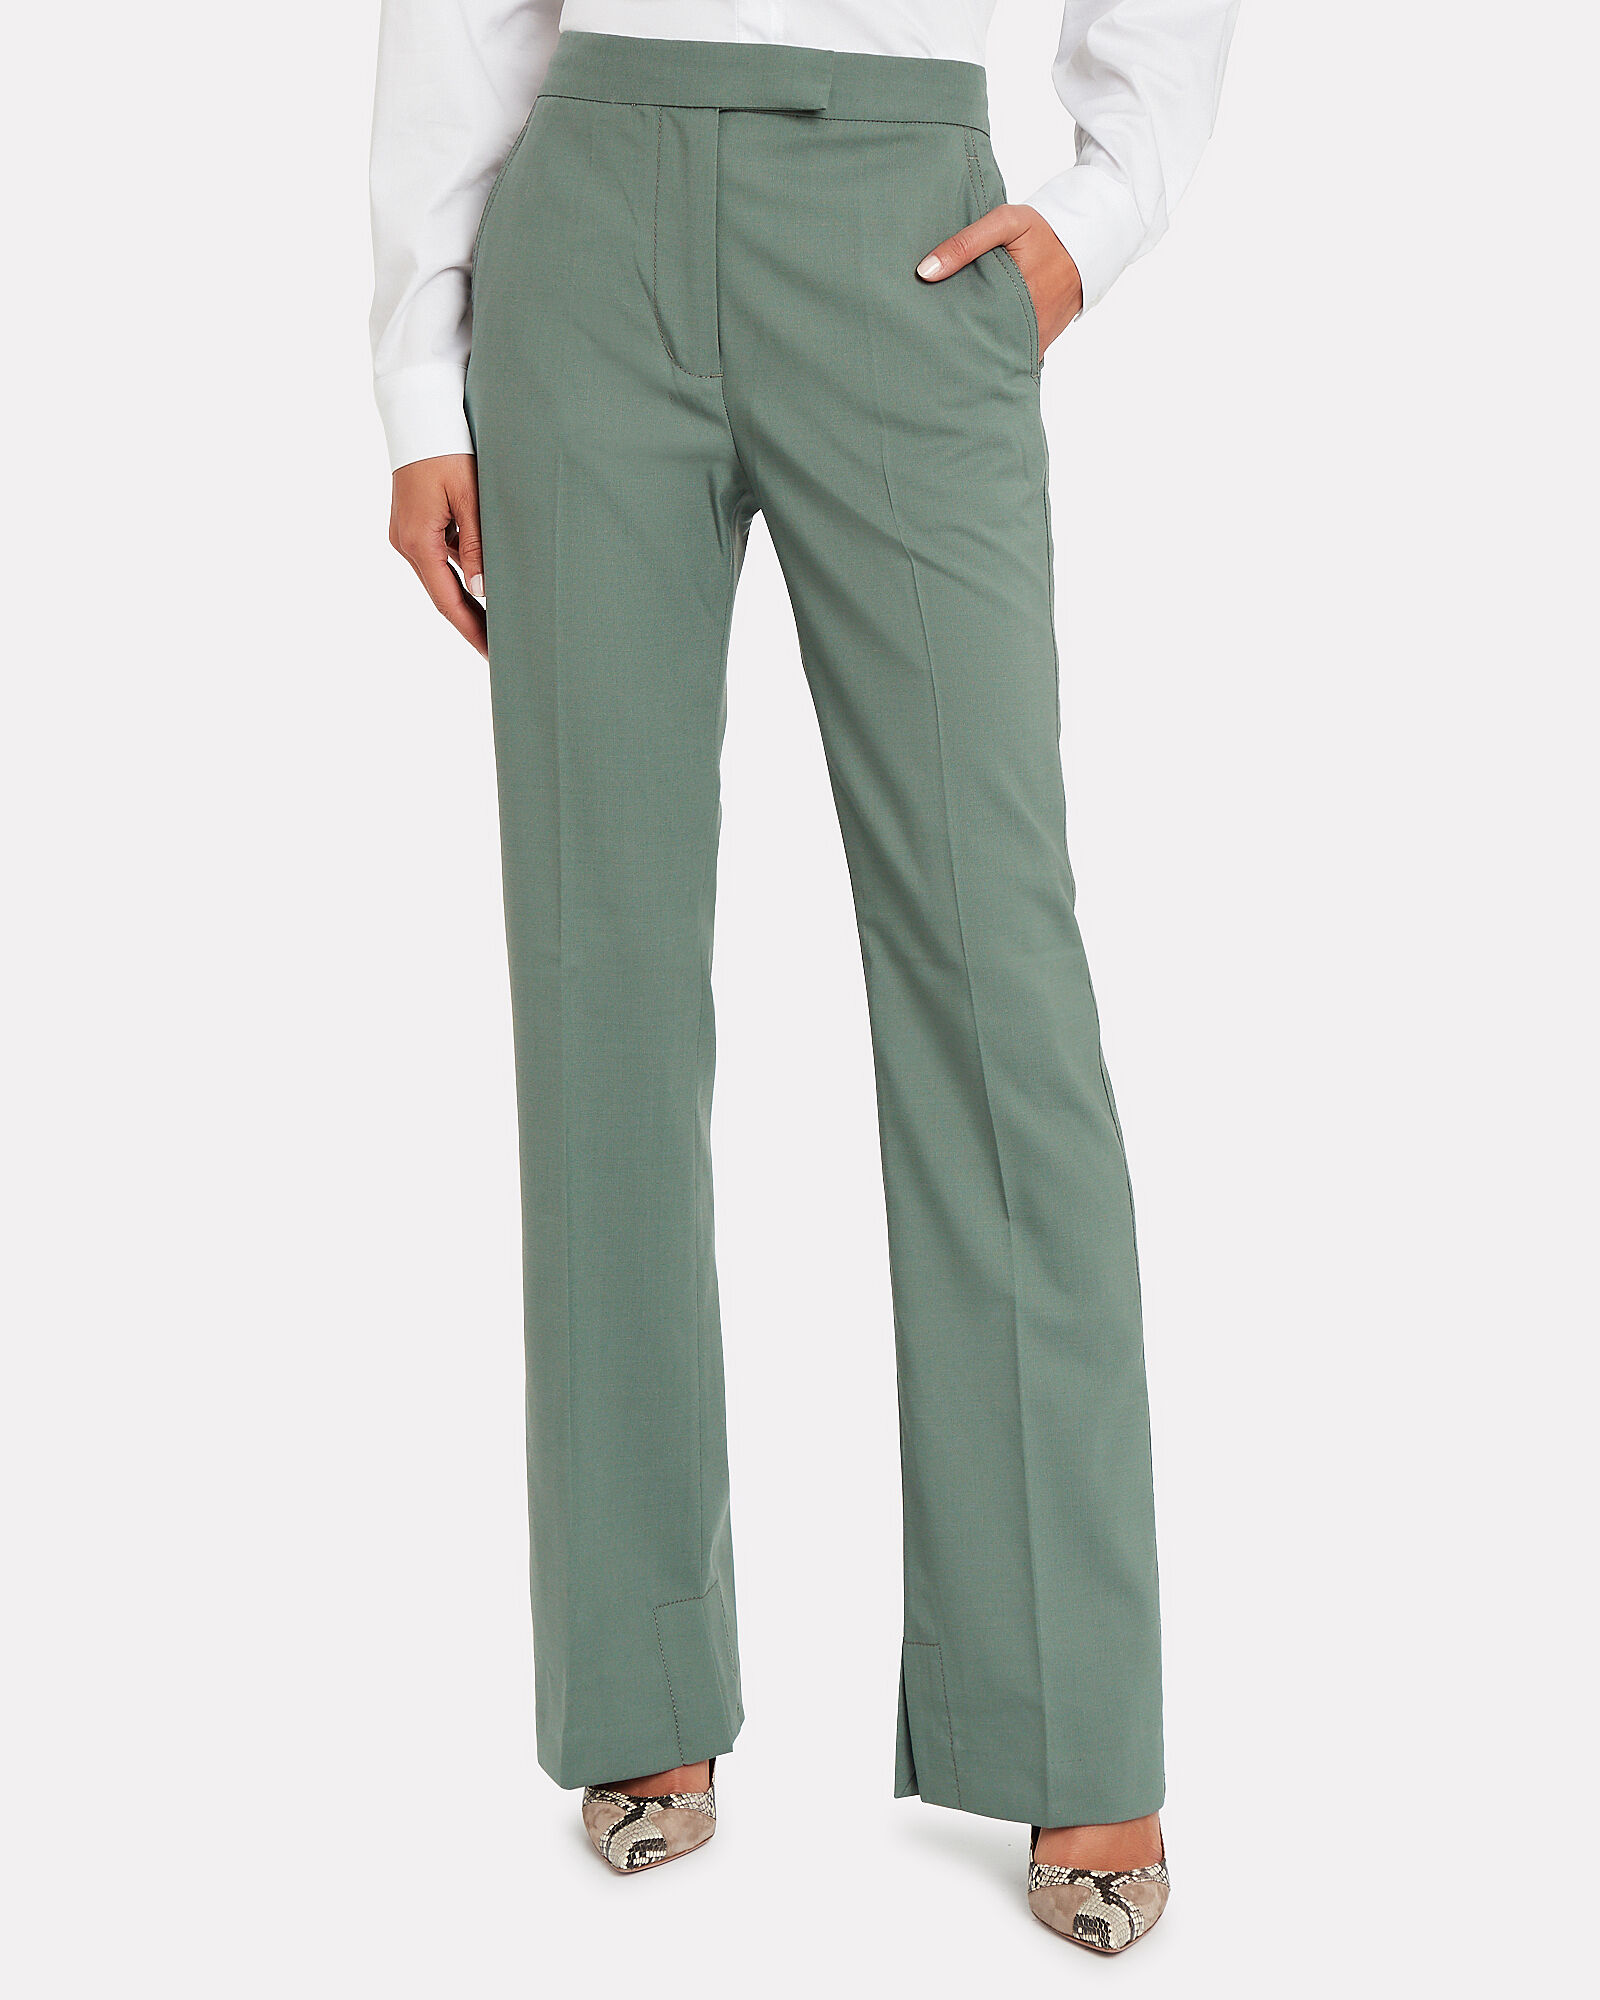 Tailored Wool-Blend Trousers, SEA FOAM GREEN, hi-res